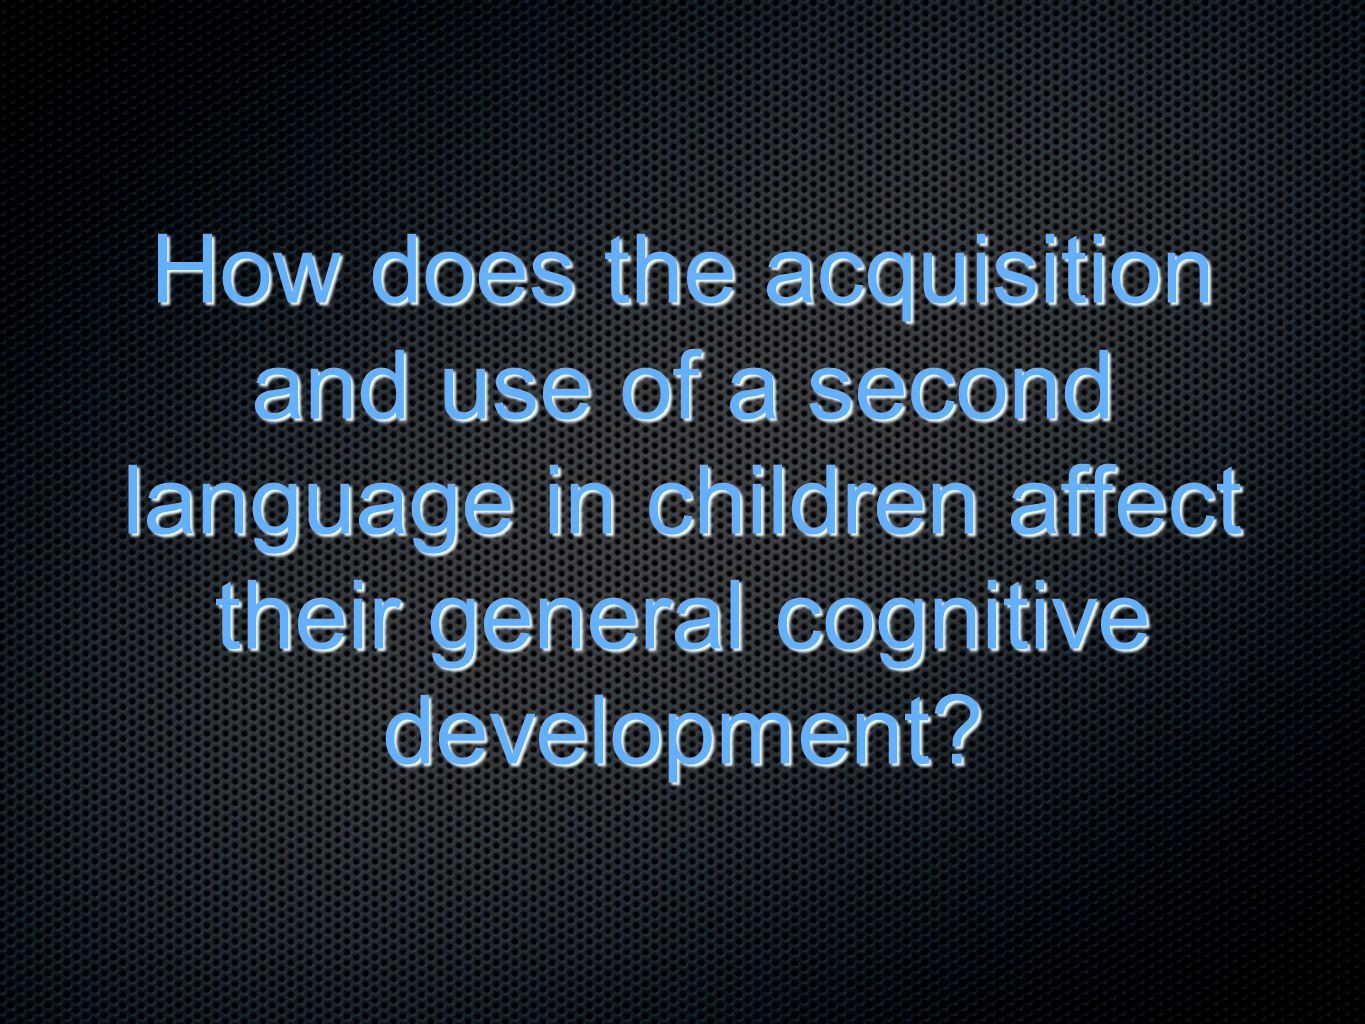 (bilingual* OR L2) AND (child* OR toddler) AND cognitive development